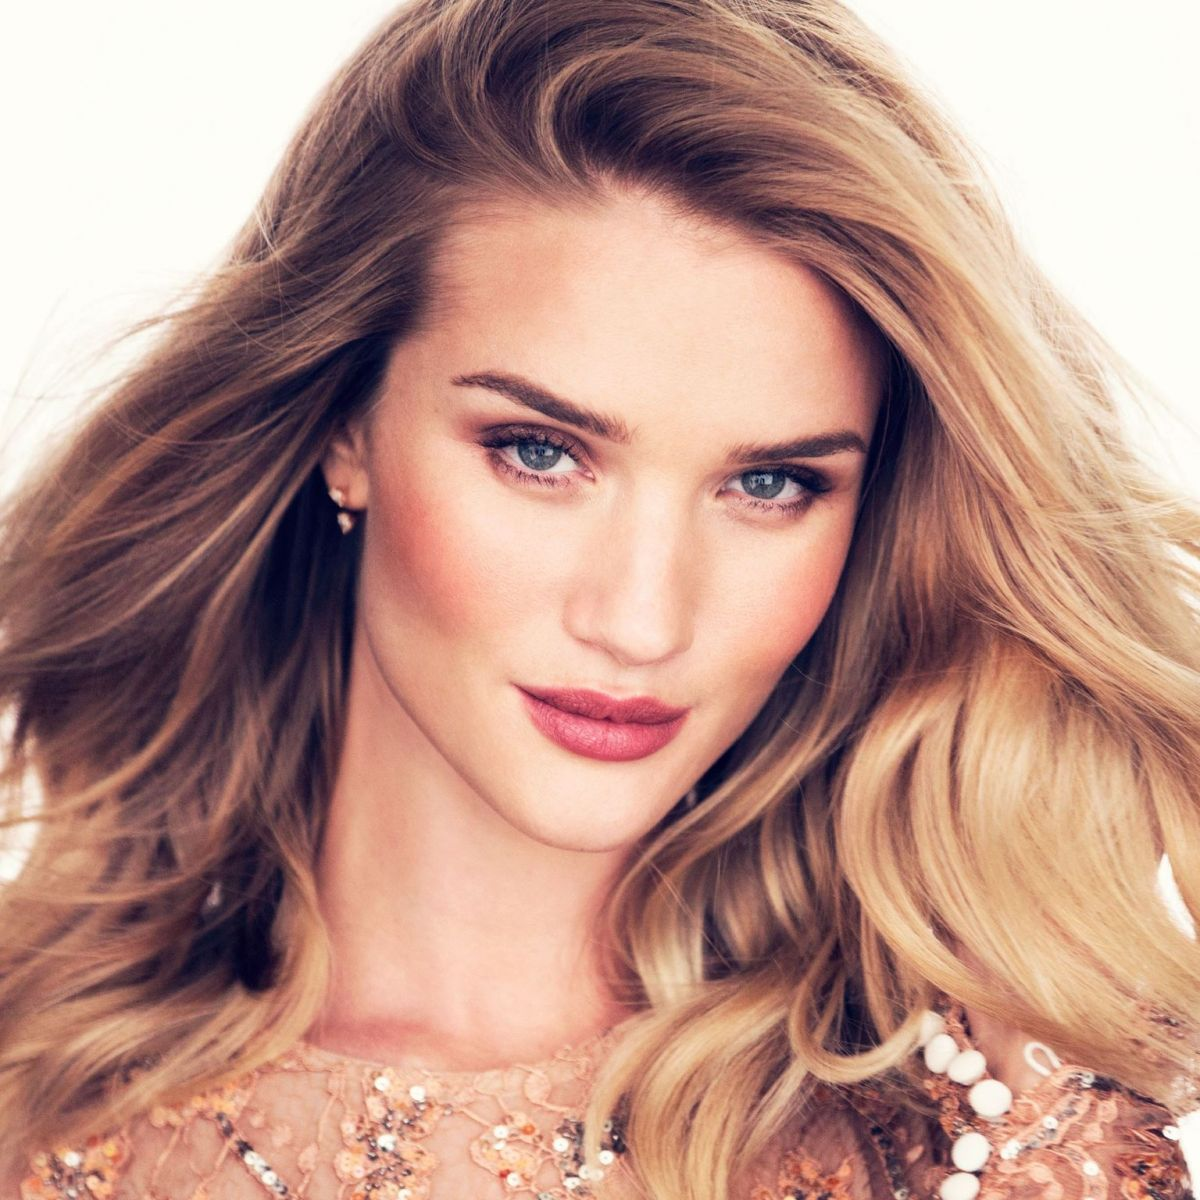 ROSIE HUNTINGTON-WHITELEY by David Bellemere for Glamour Magazine Rosie Huntington Whiteley